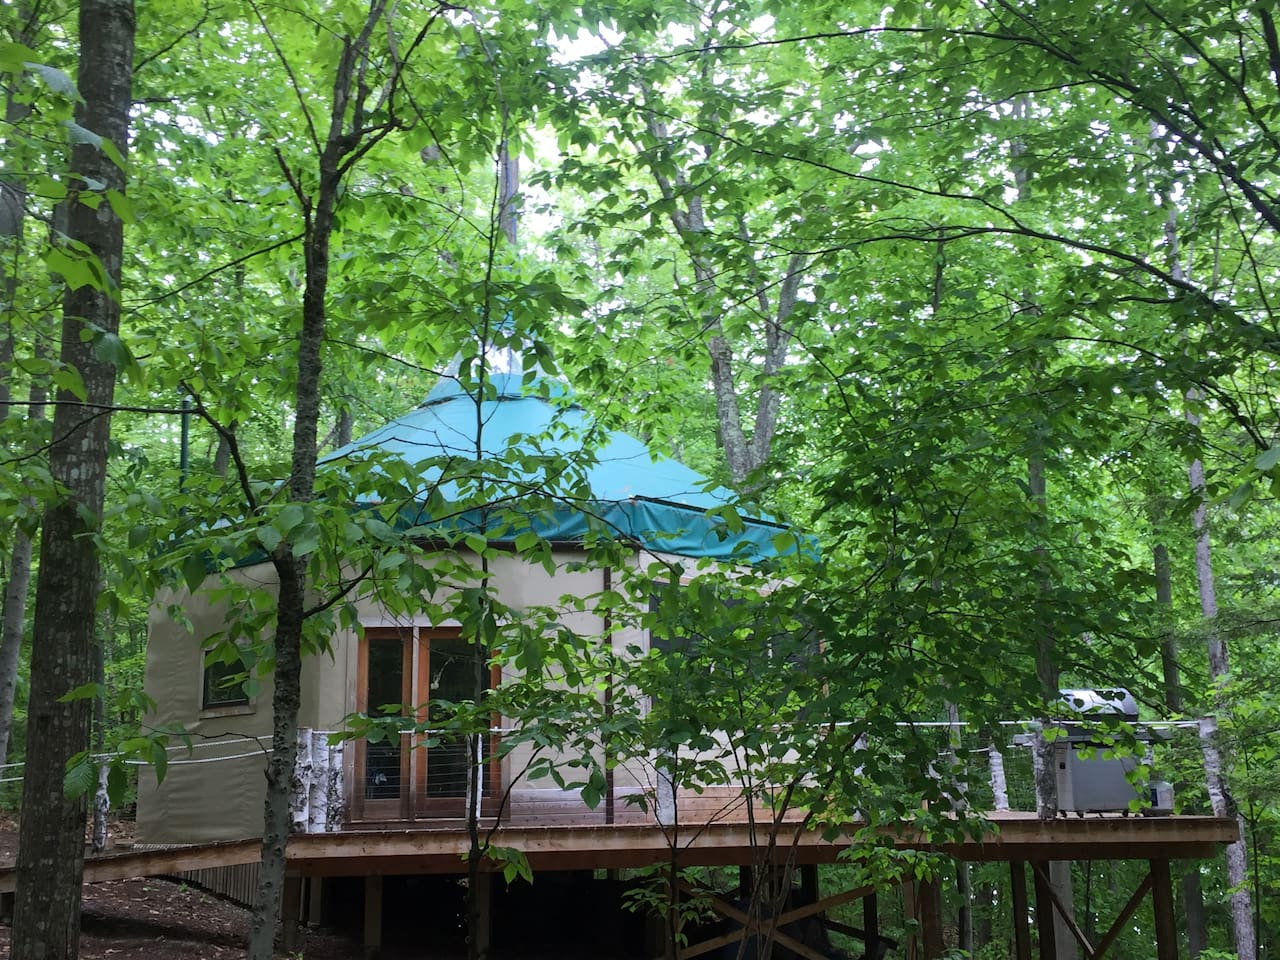 The Oaktagon is nestled in the trees, built around a living oak tree on 1 Big Sustainable Island